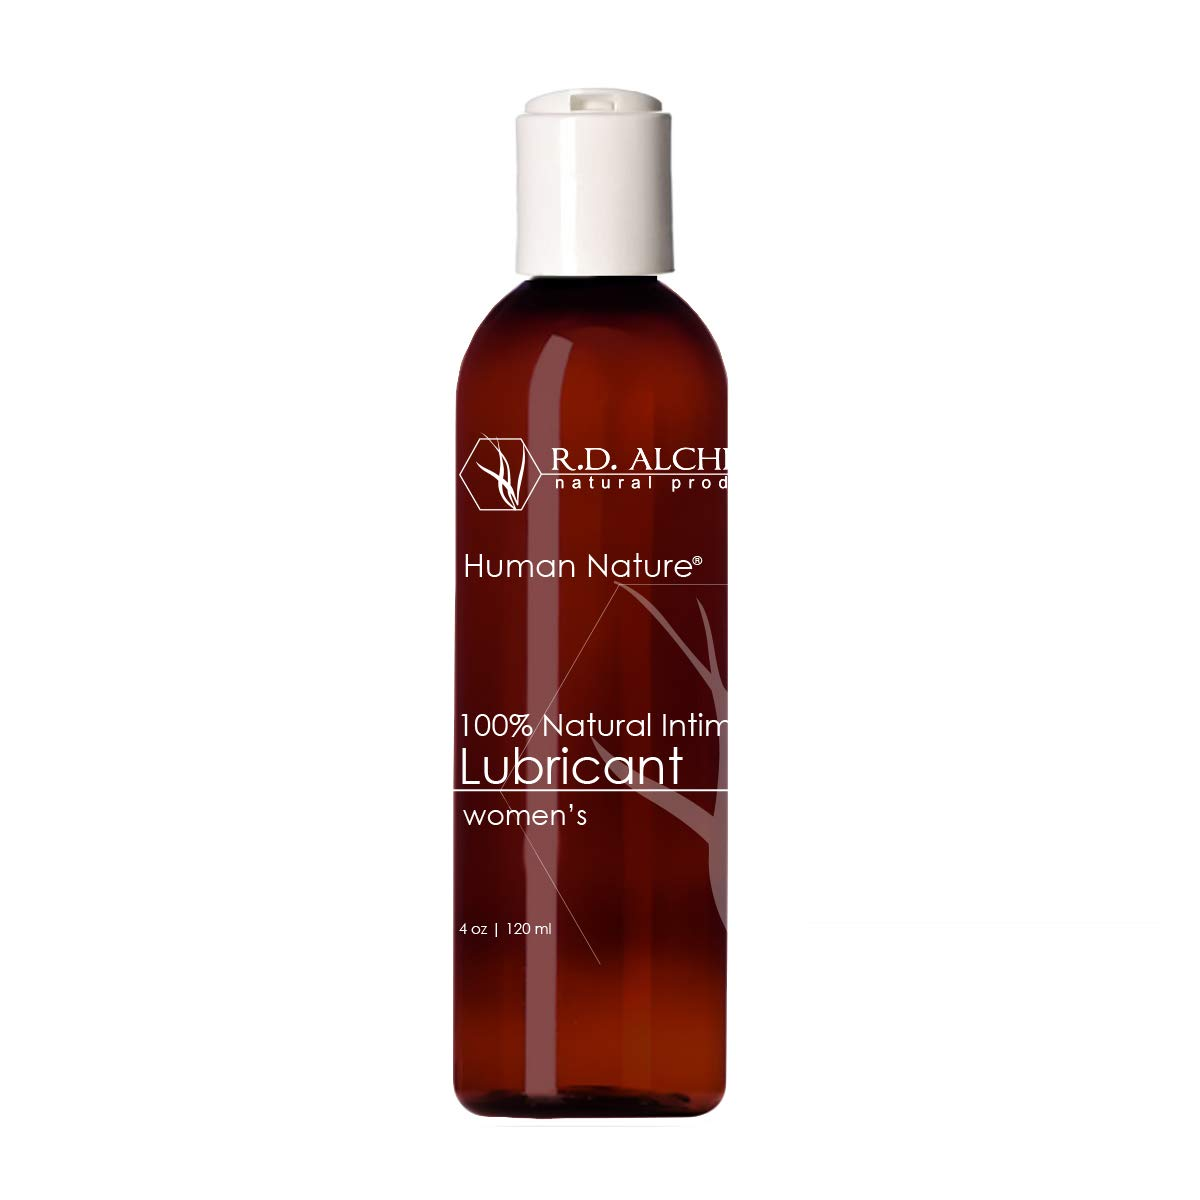 100% Natural & Organic Moisturizing, Personal Lube for Vaginal Dryness. Water Based/Silicone free Lubrication ideal for Menopausal and Sensitive Skin. Best Gel Lube for Women and Sex. NON Sticky!